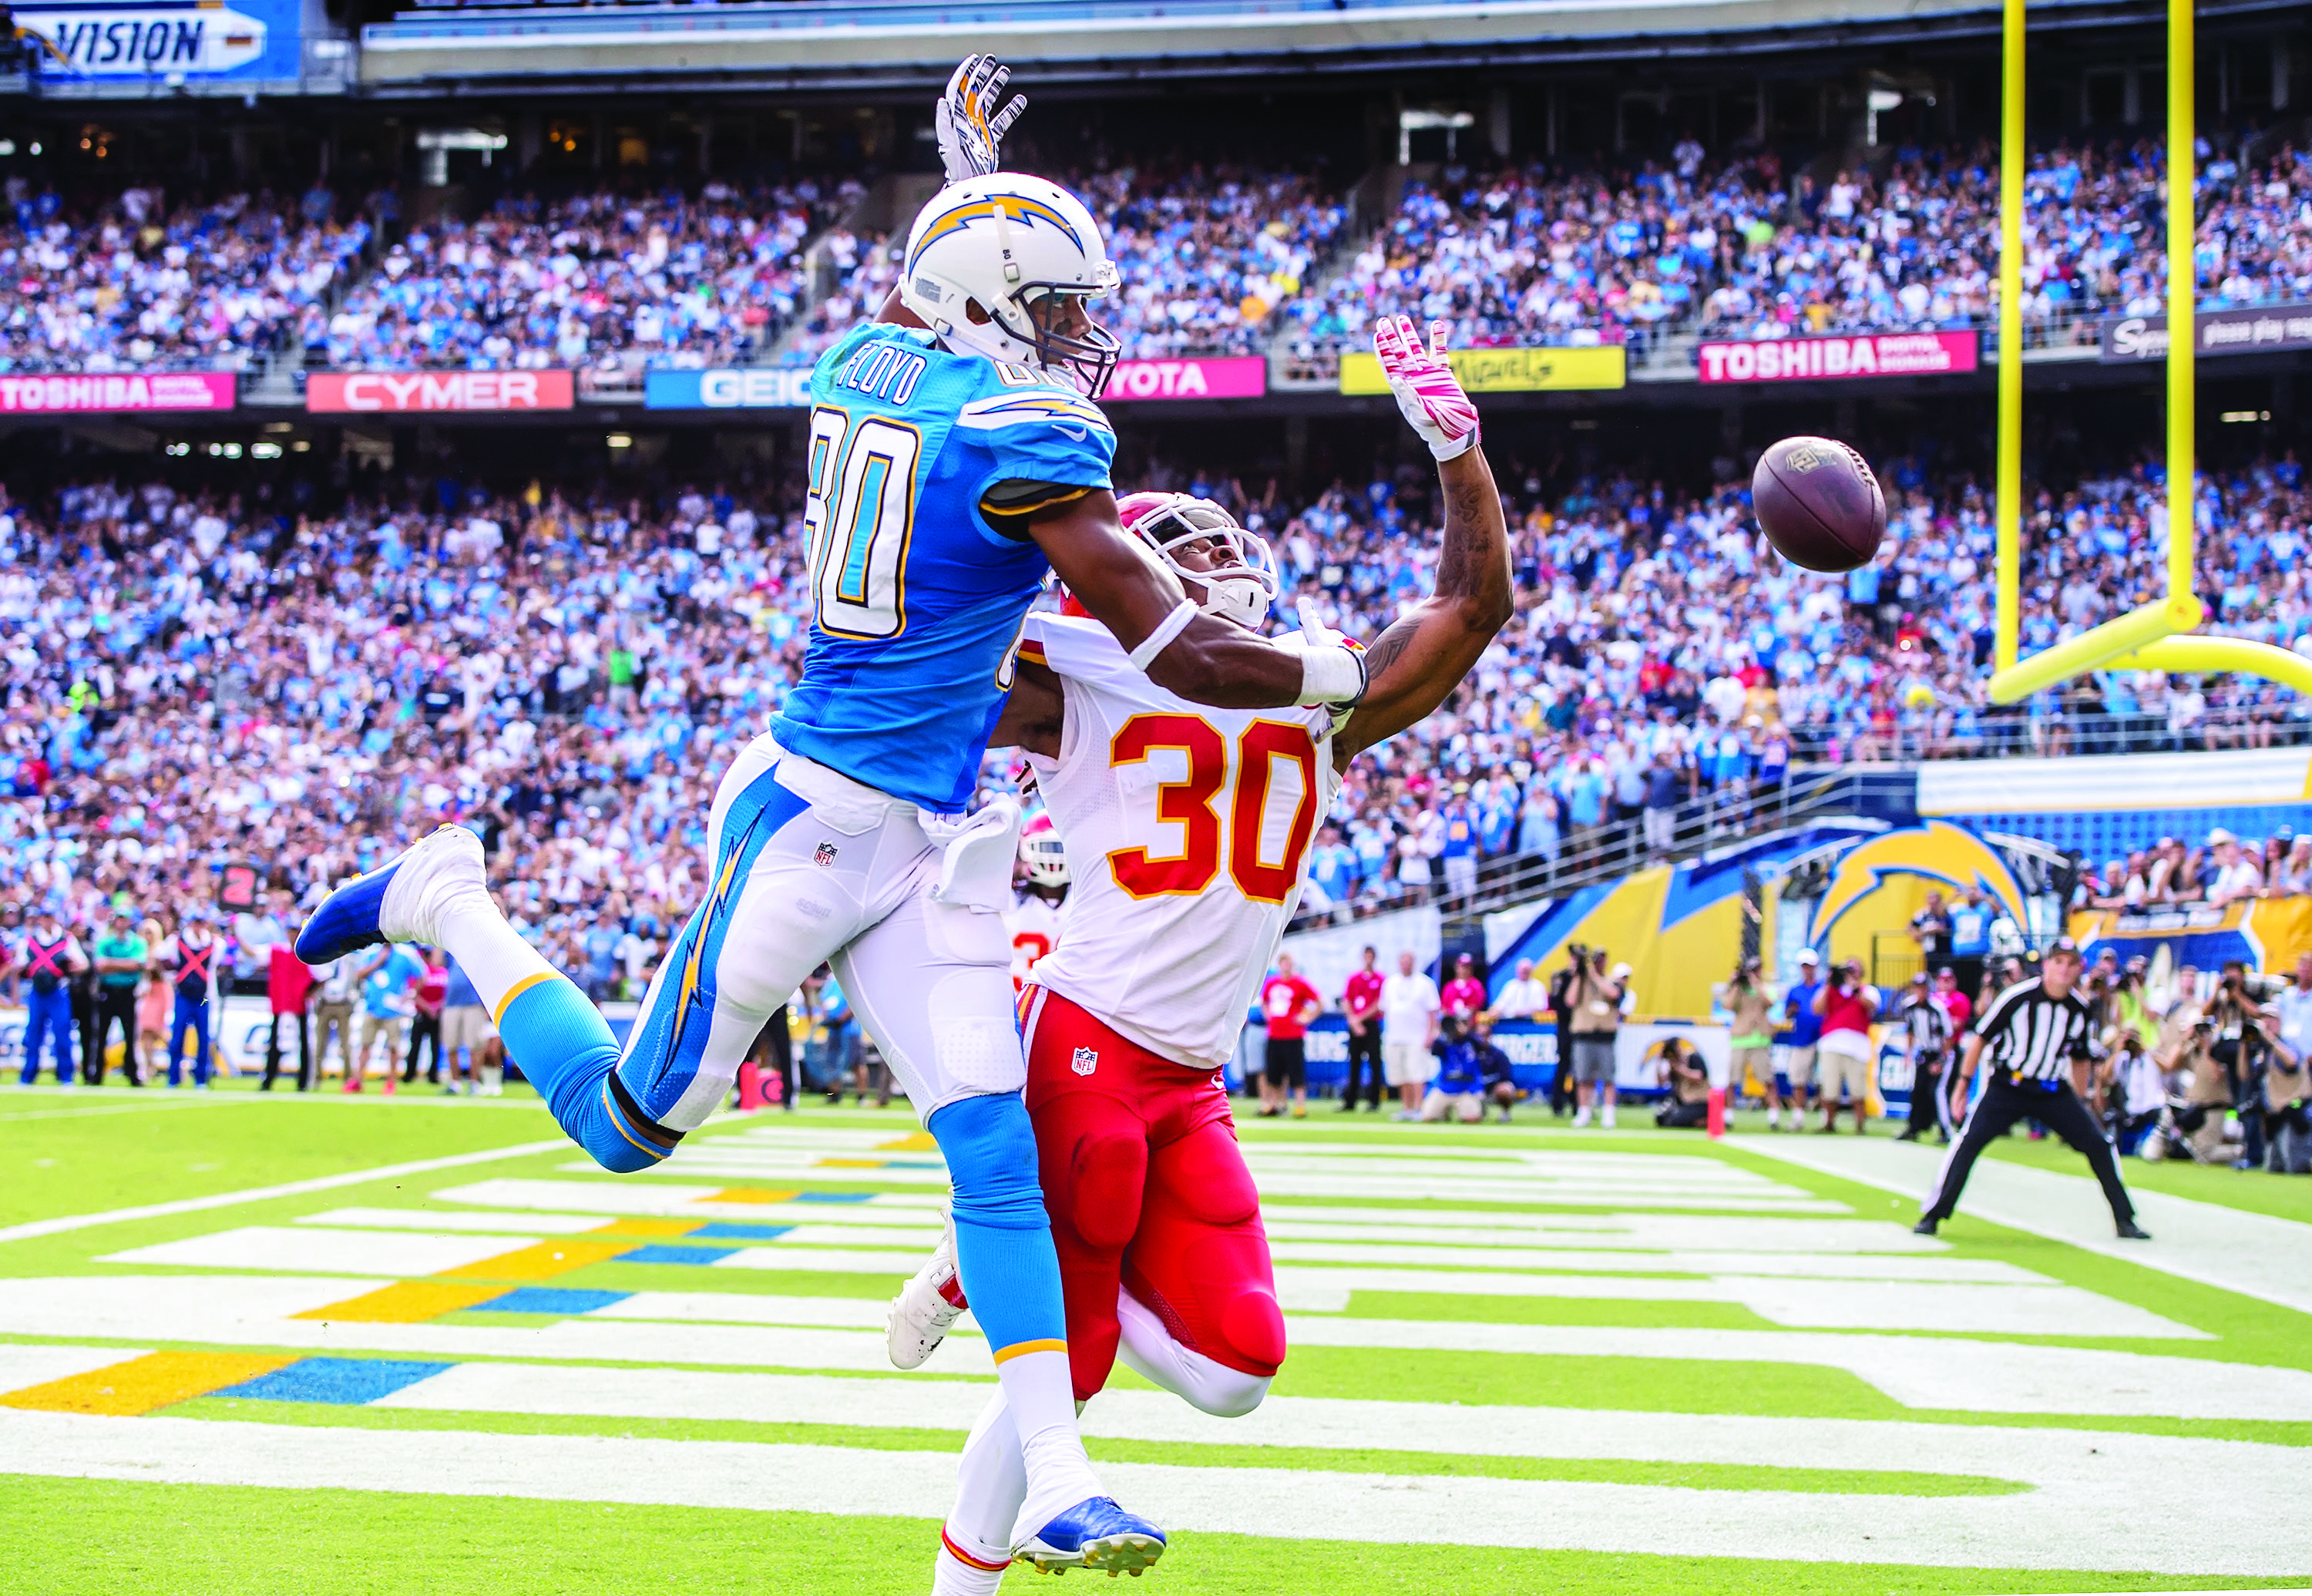 Kansas City Chiefs defensive back Jamell Fleming (30) breaks up a pass attempt in the end zone intended for San Diego Chargers wide receiver Malcom Floyd (80) on Sunday, Oct. 19, 2014, at Qualcomm Stadium in San Diego. (David Eulitt/Kansas City Star/MCT)